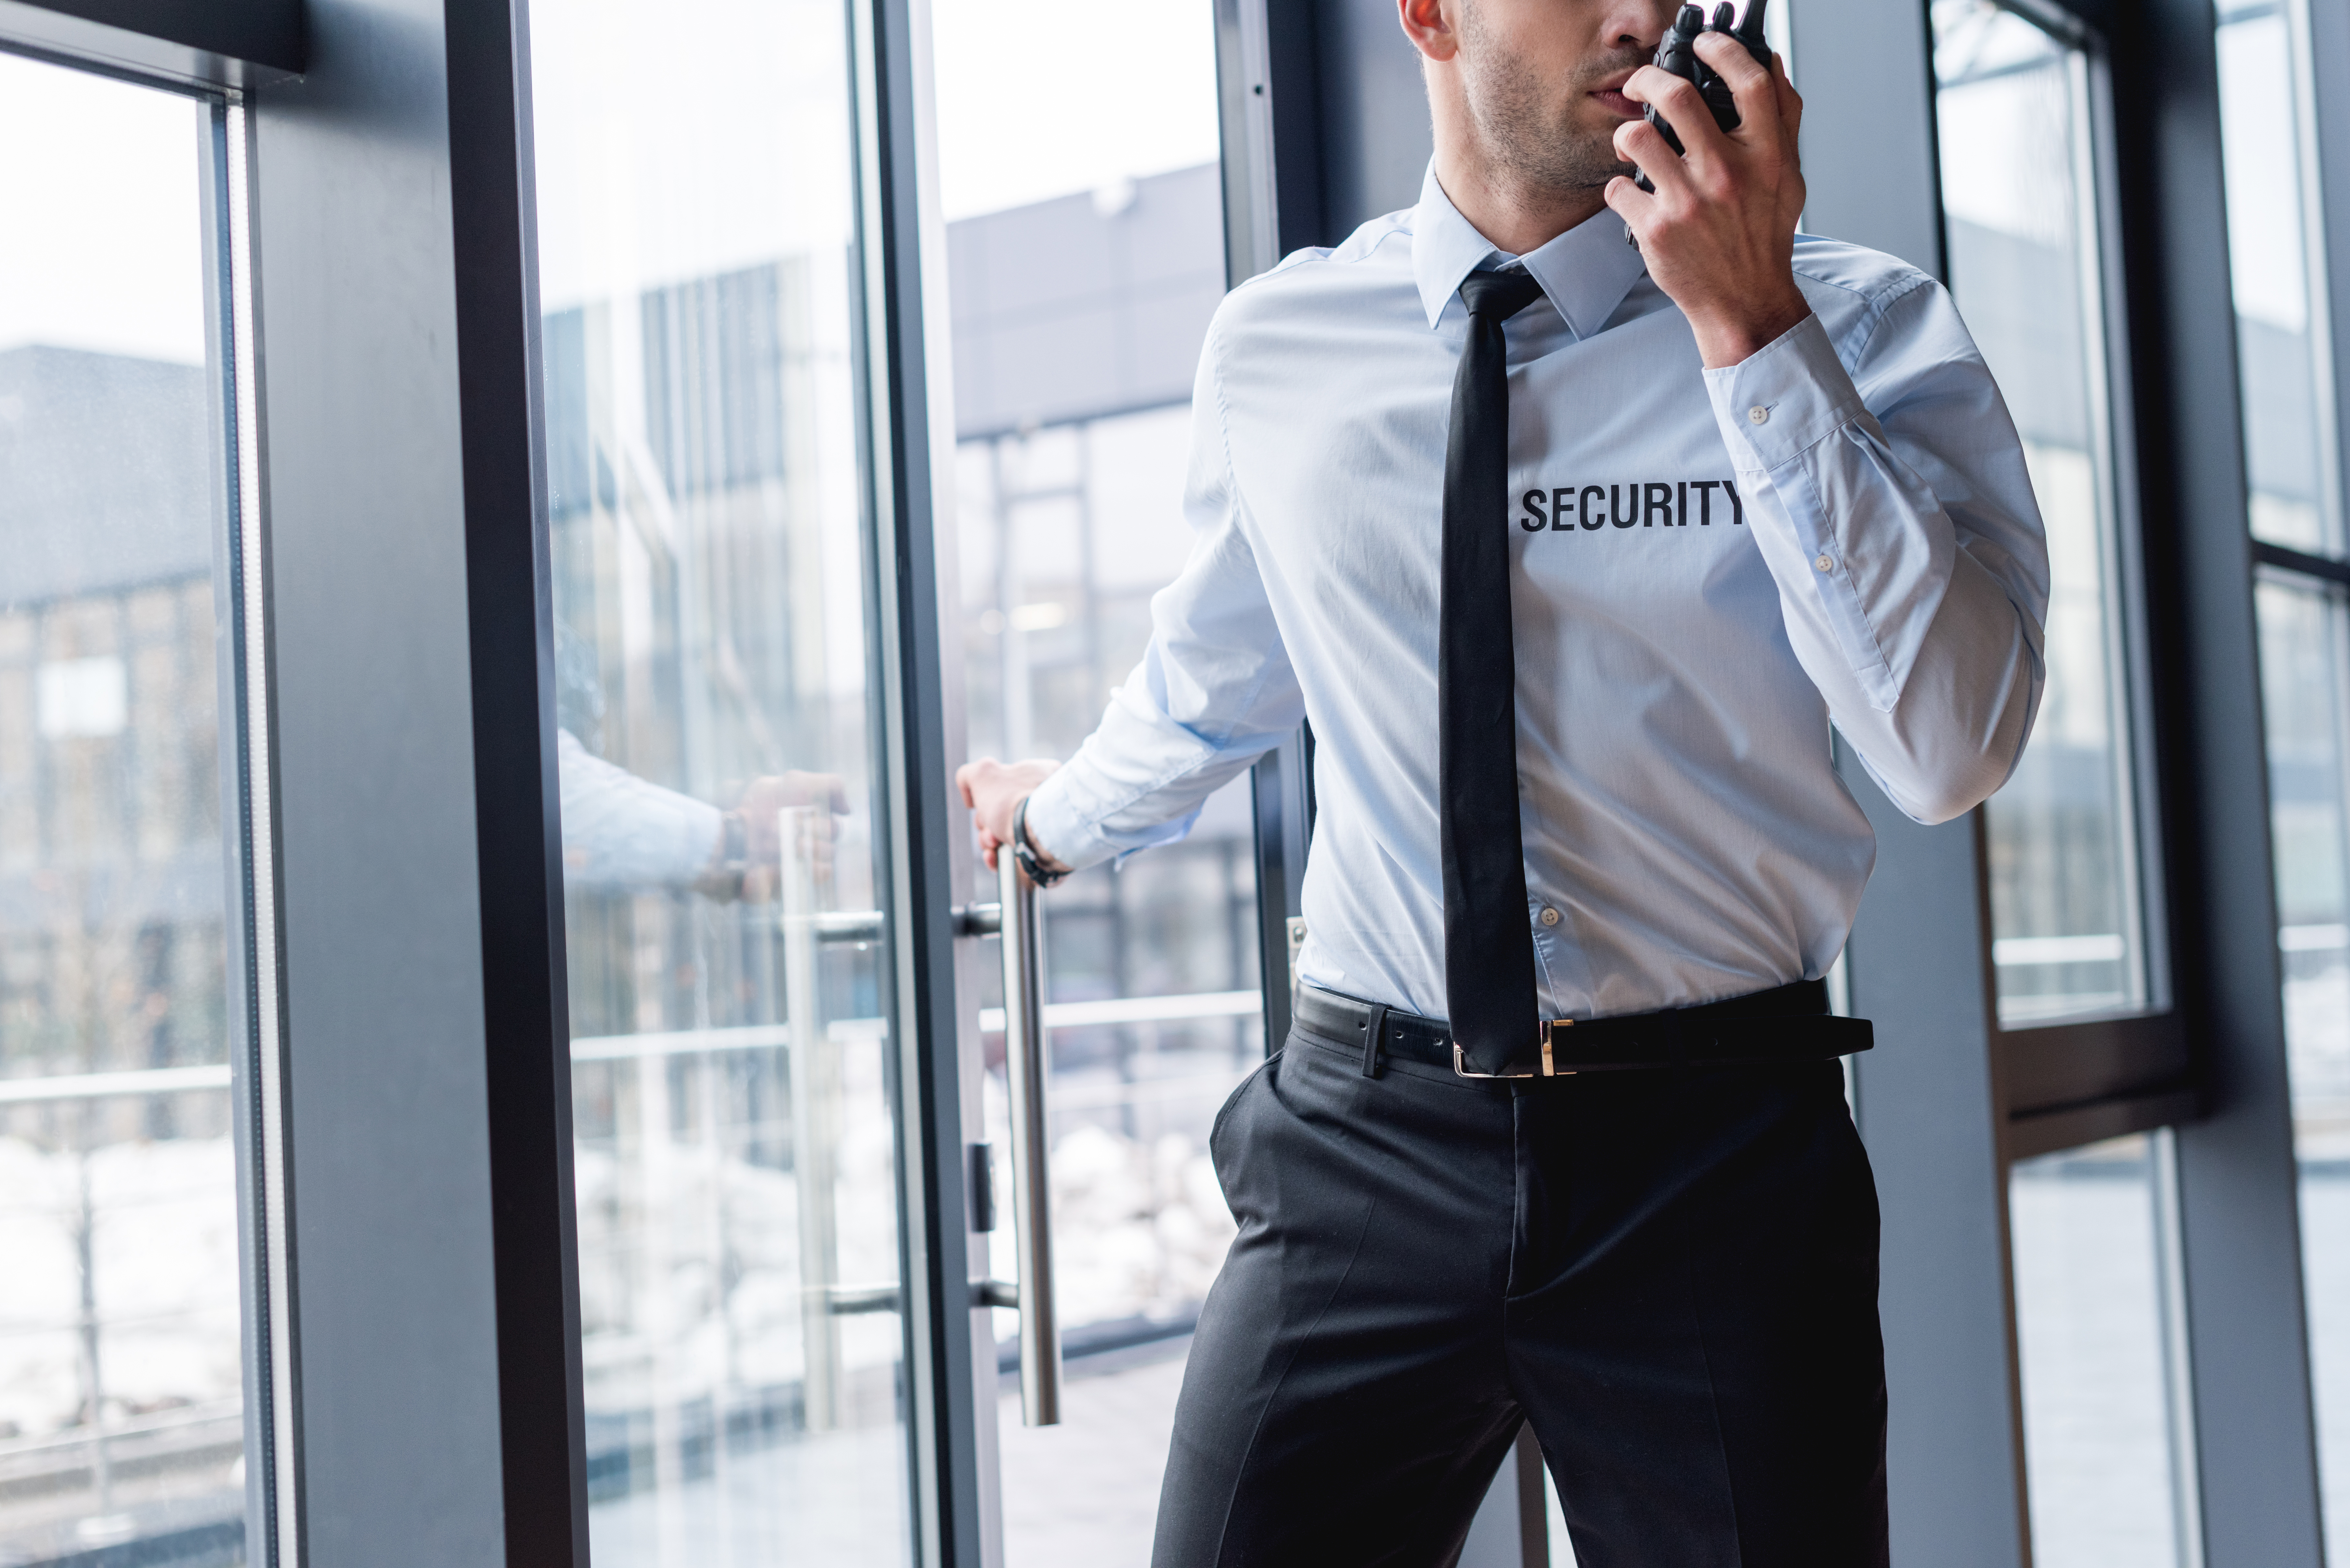 Security, Company, Companies, Guards, Retail